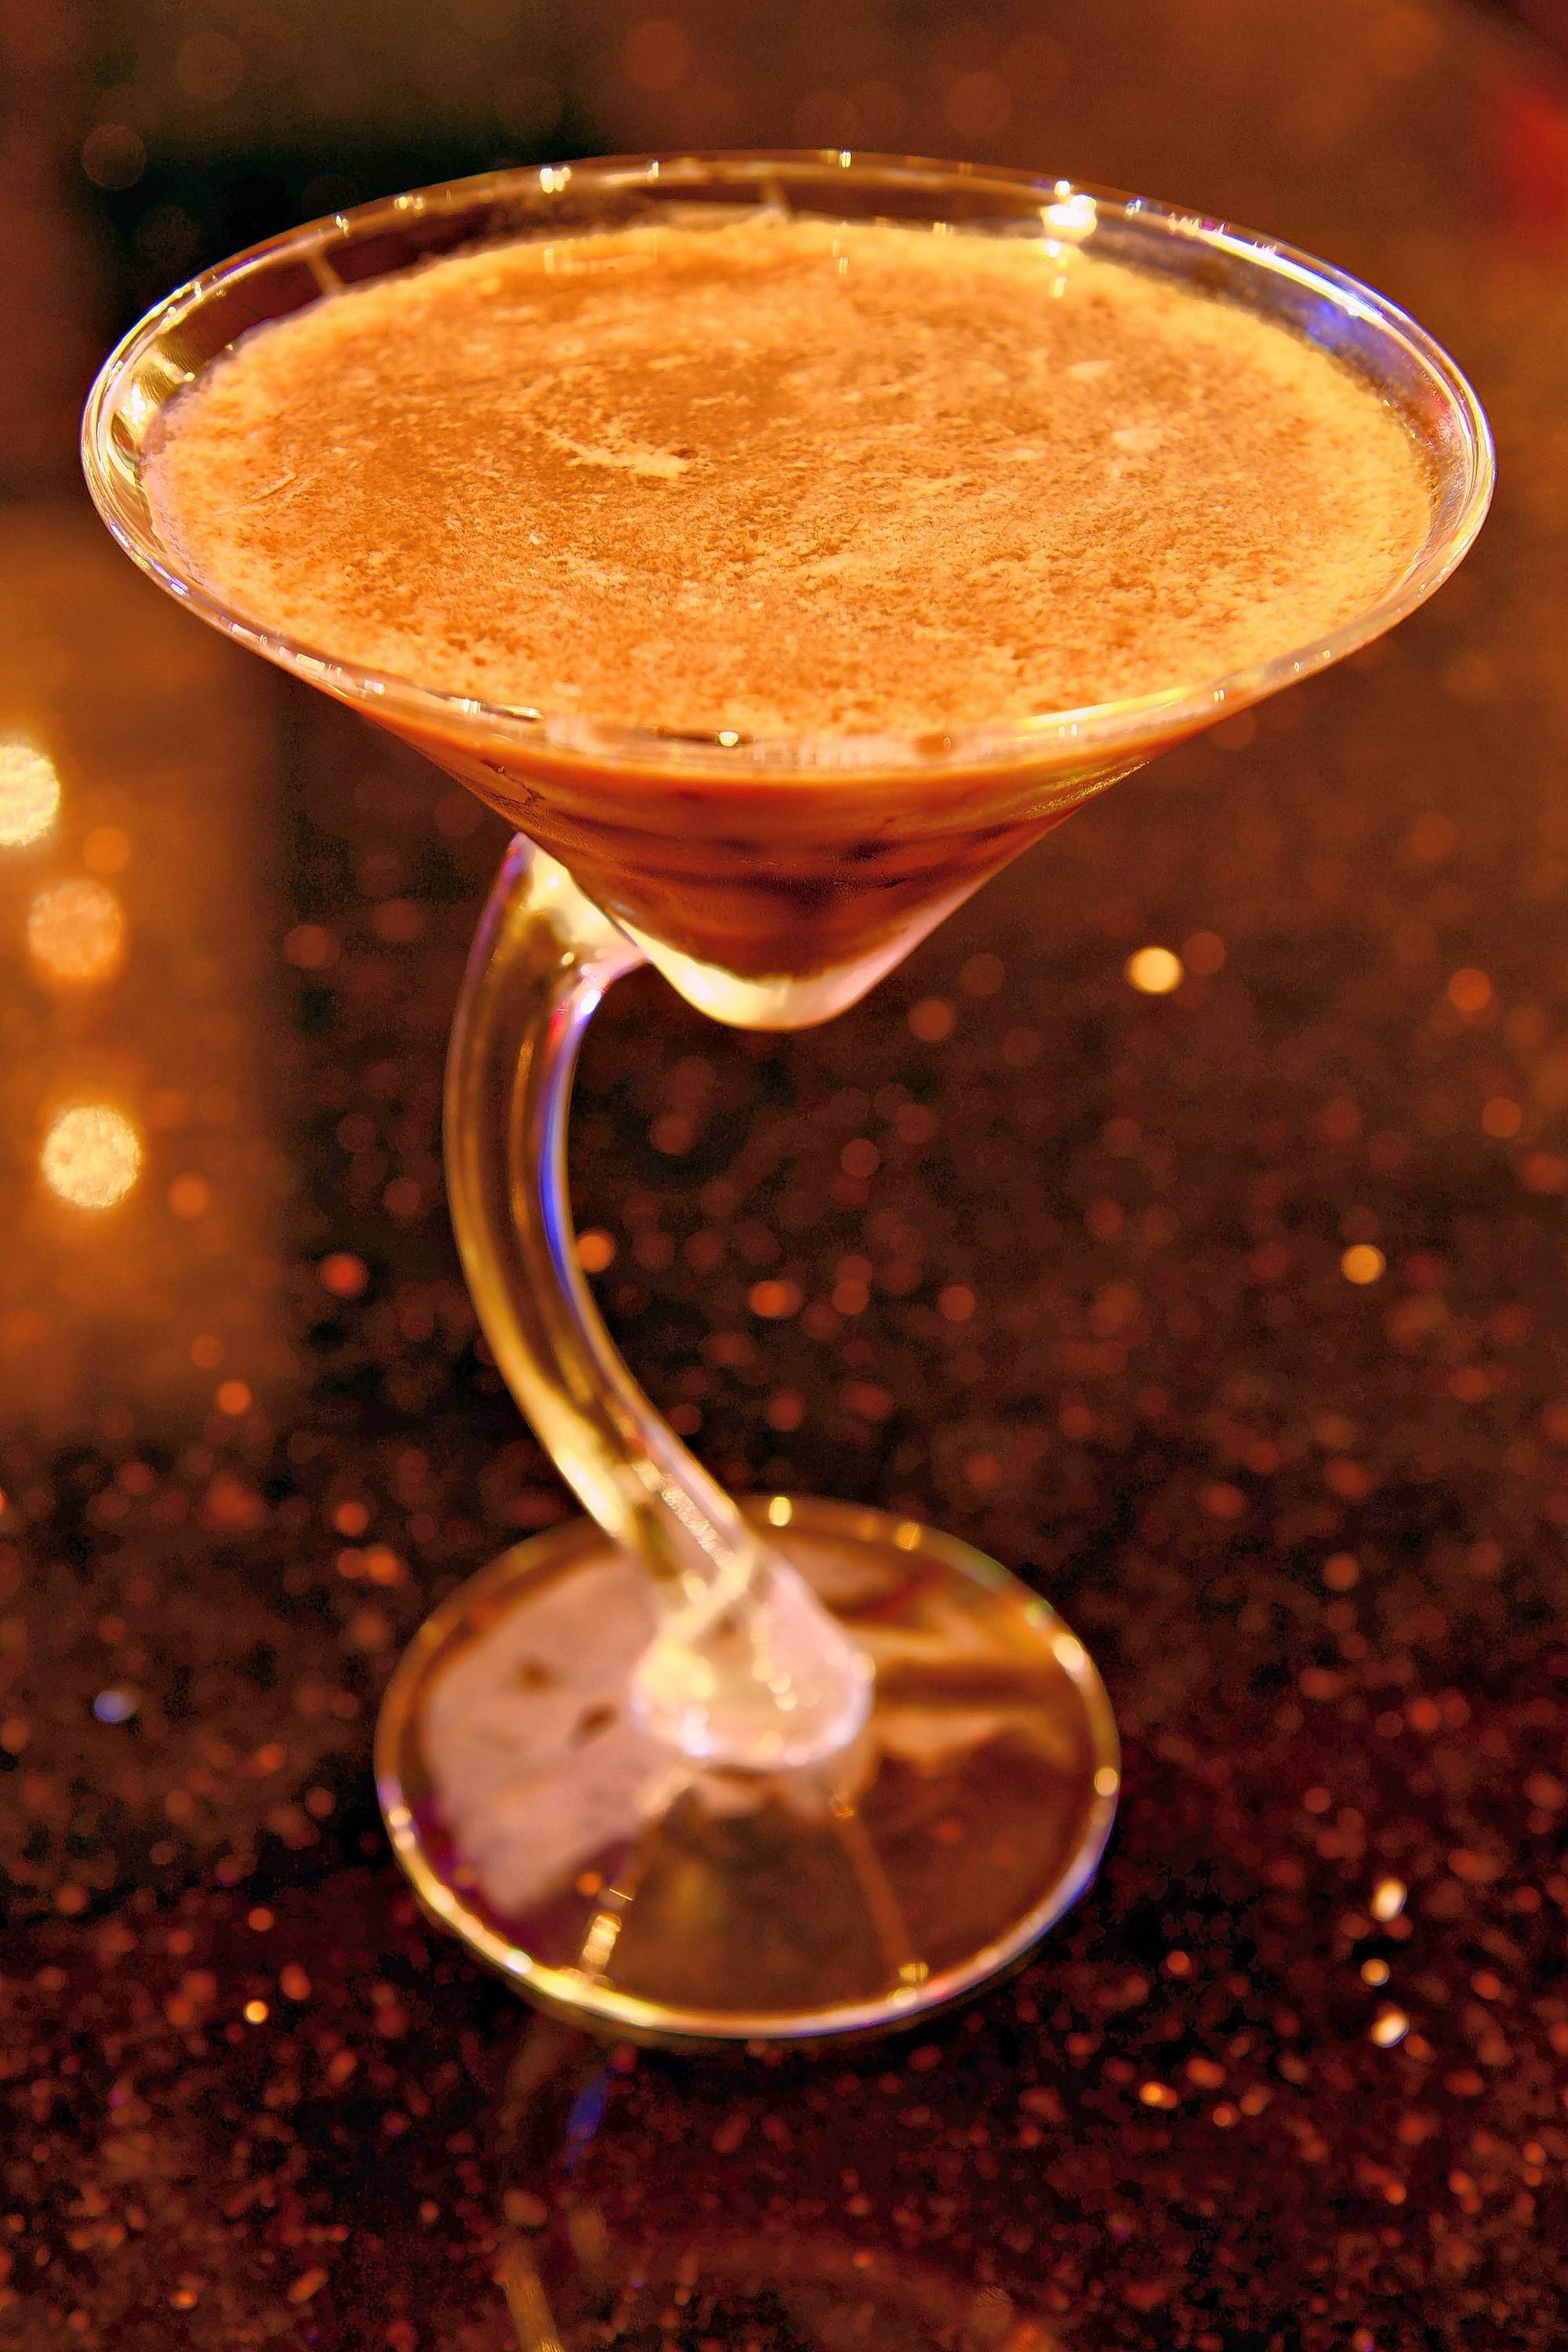 The Martini Room's espresso martini blends Bailey's, Kahlua and Van Gogh double espresso vodka with chocolate-covered roasted coffee beans at the bottom of the glass and espresso powder on top.